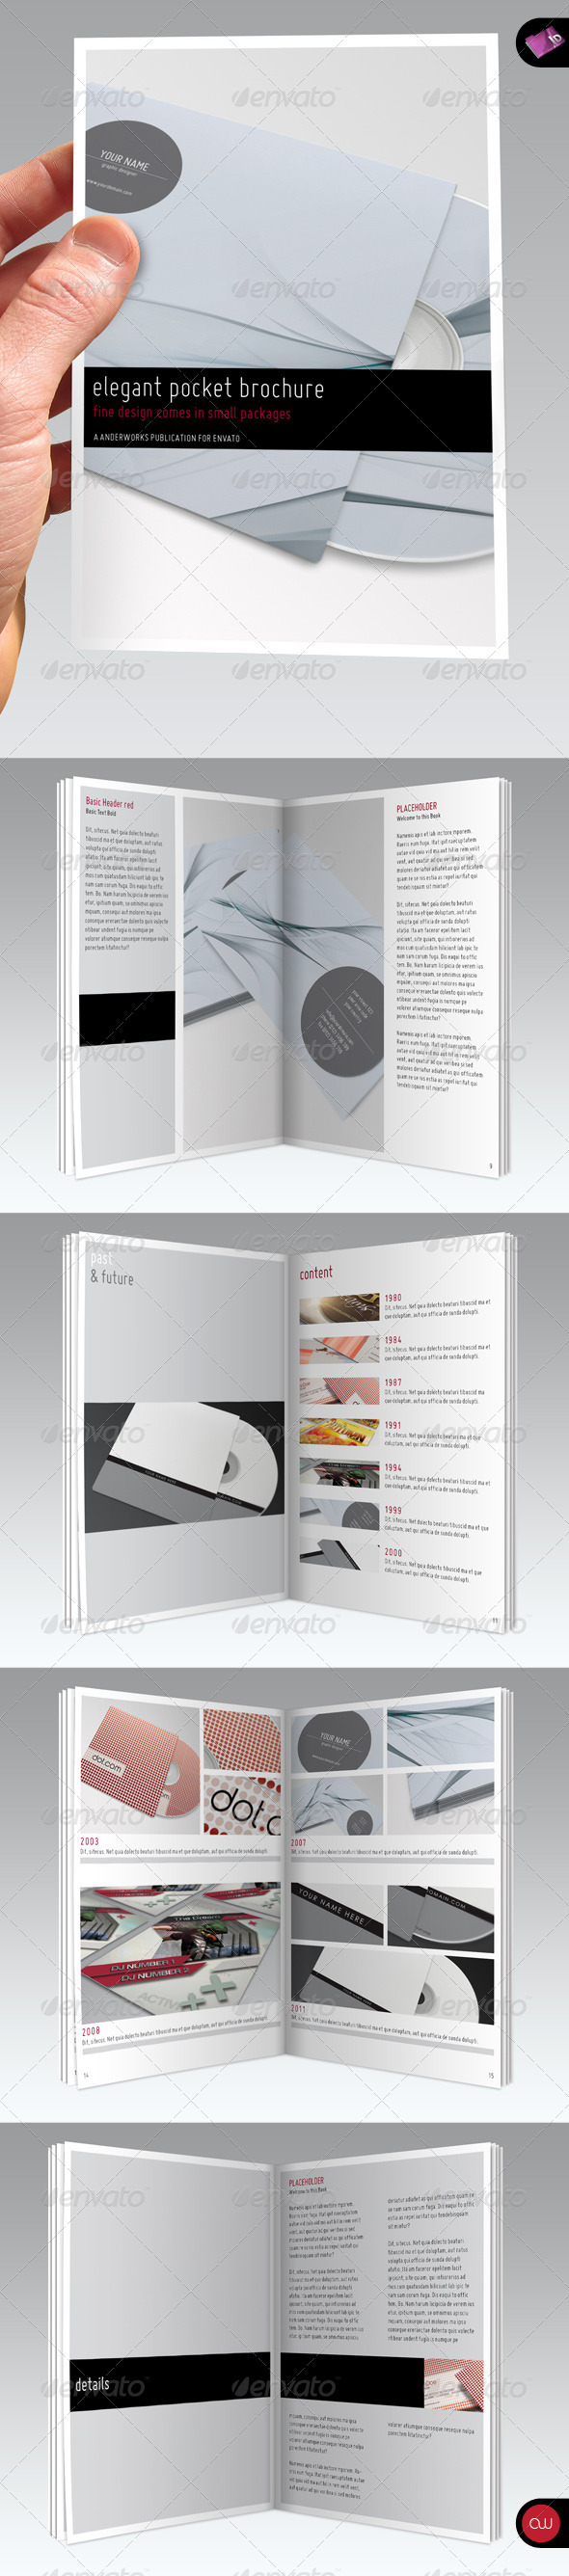 Elegant Series A Pocket Brochure Template By Isoarts GraphicRiver - Elegant brochure templates